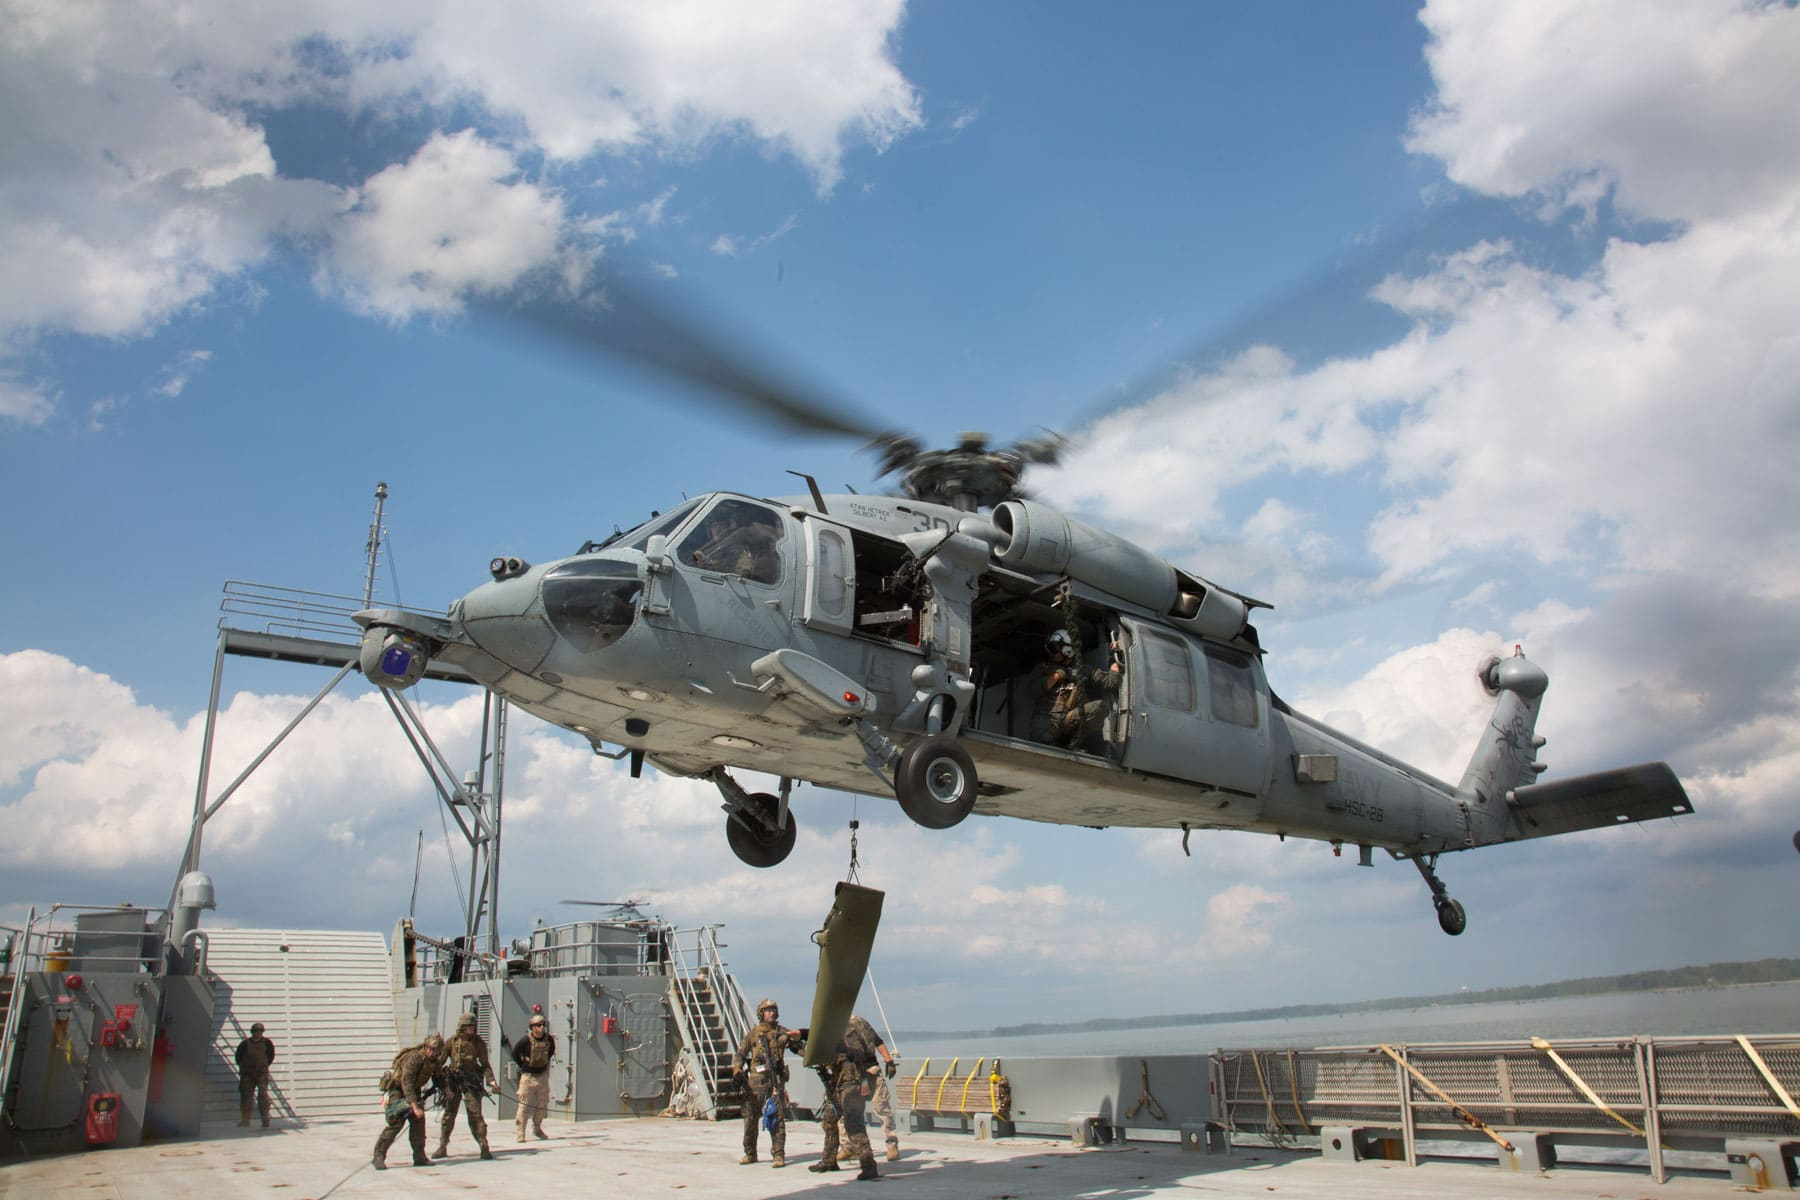 US Marines with the Maritime Raid Force (MRF), 26th Marine Expeditionary Unit (MEU), and Sailors with Helicopter Sea Combat Squadron (HSC) 28 utilize an MH-60S Seahawk to hoist a simulated casualty.